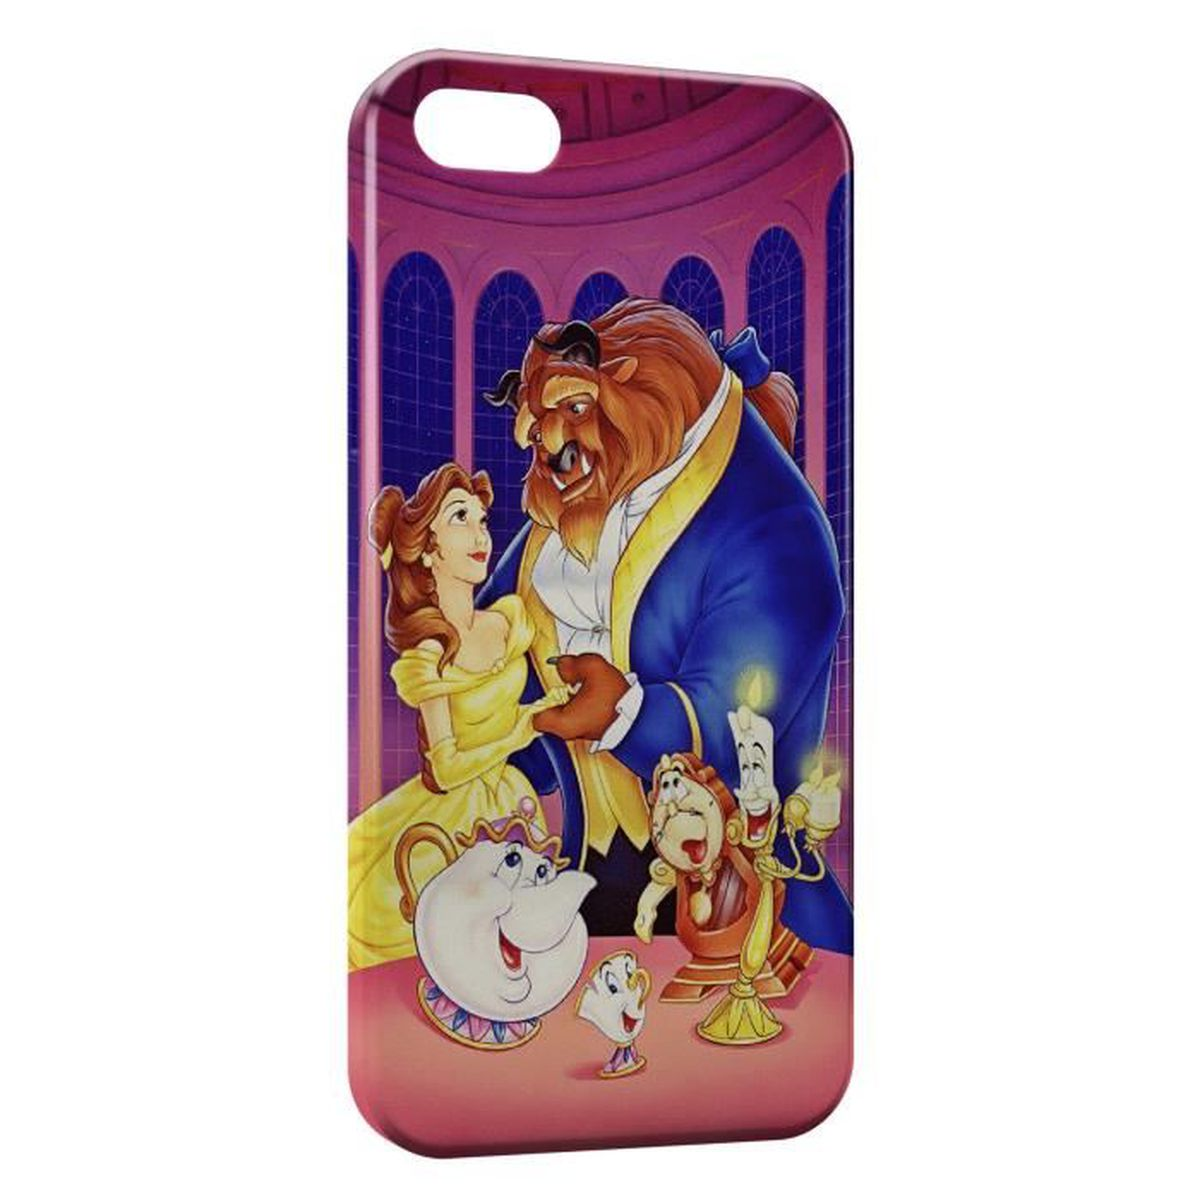 coque iphone 5 la belle et la bete